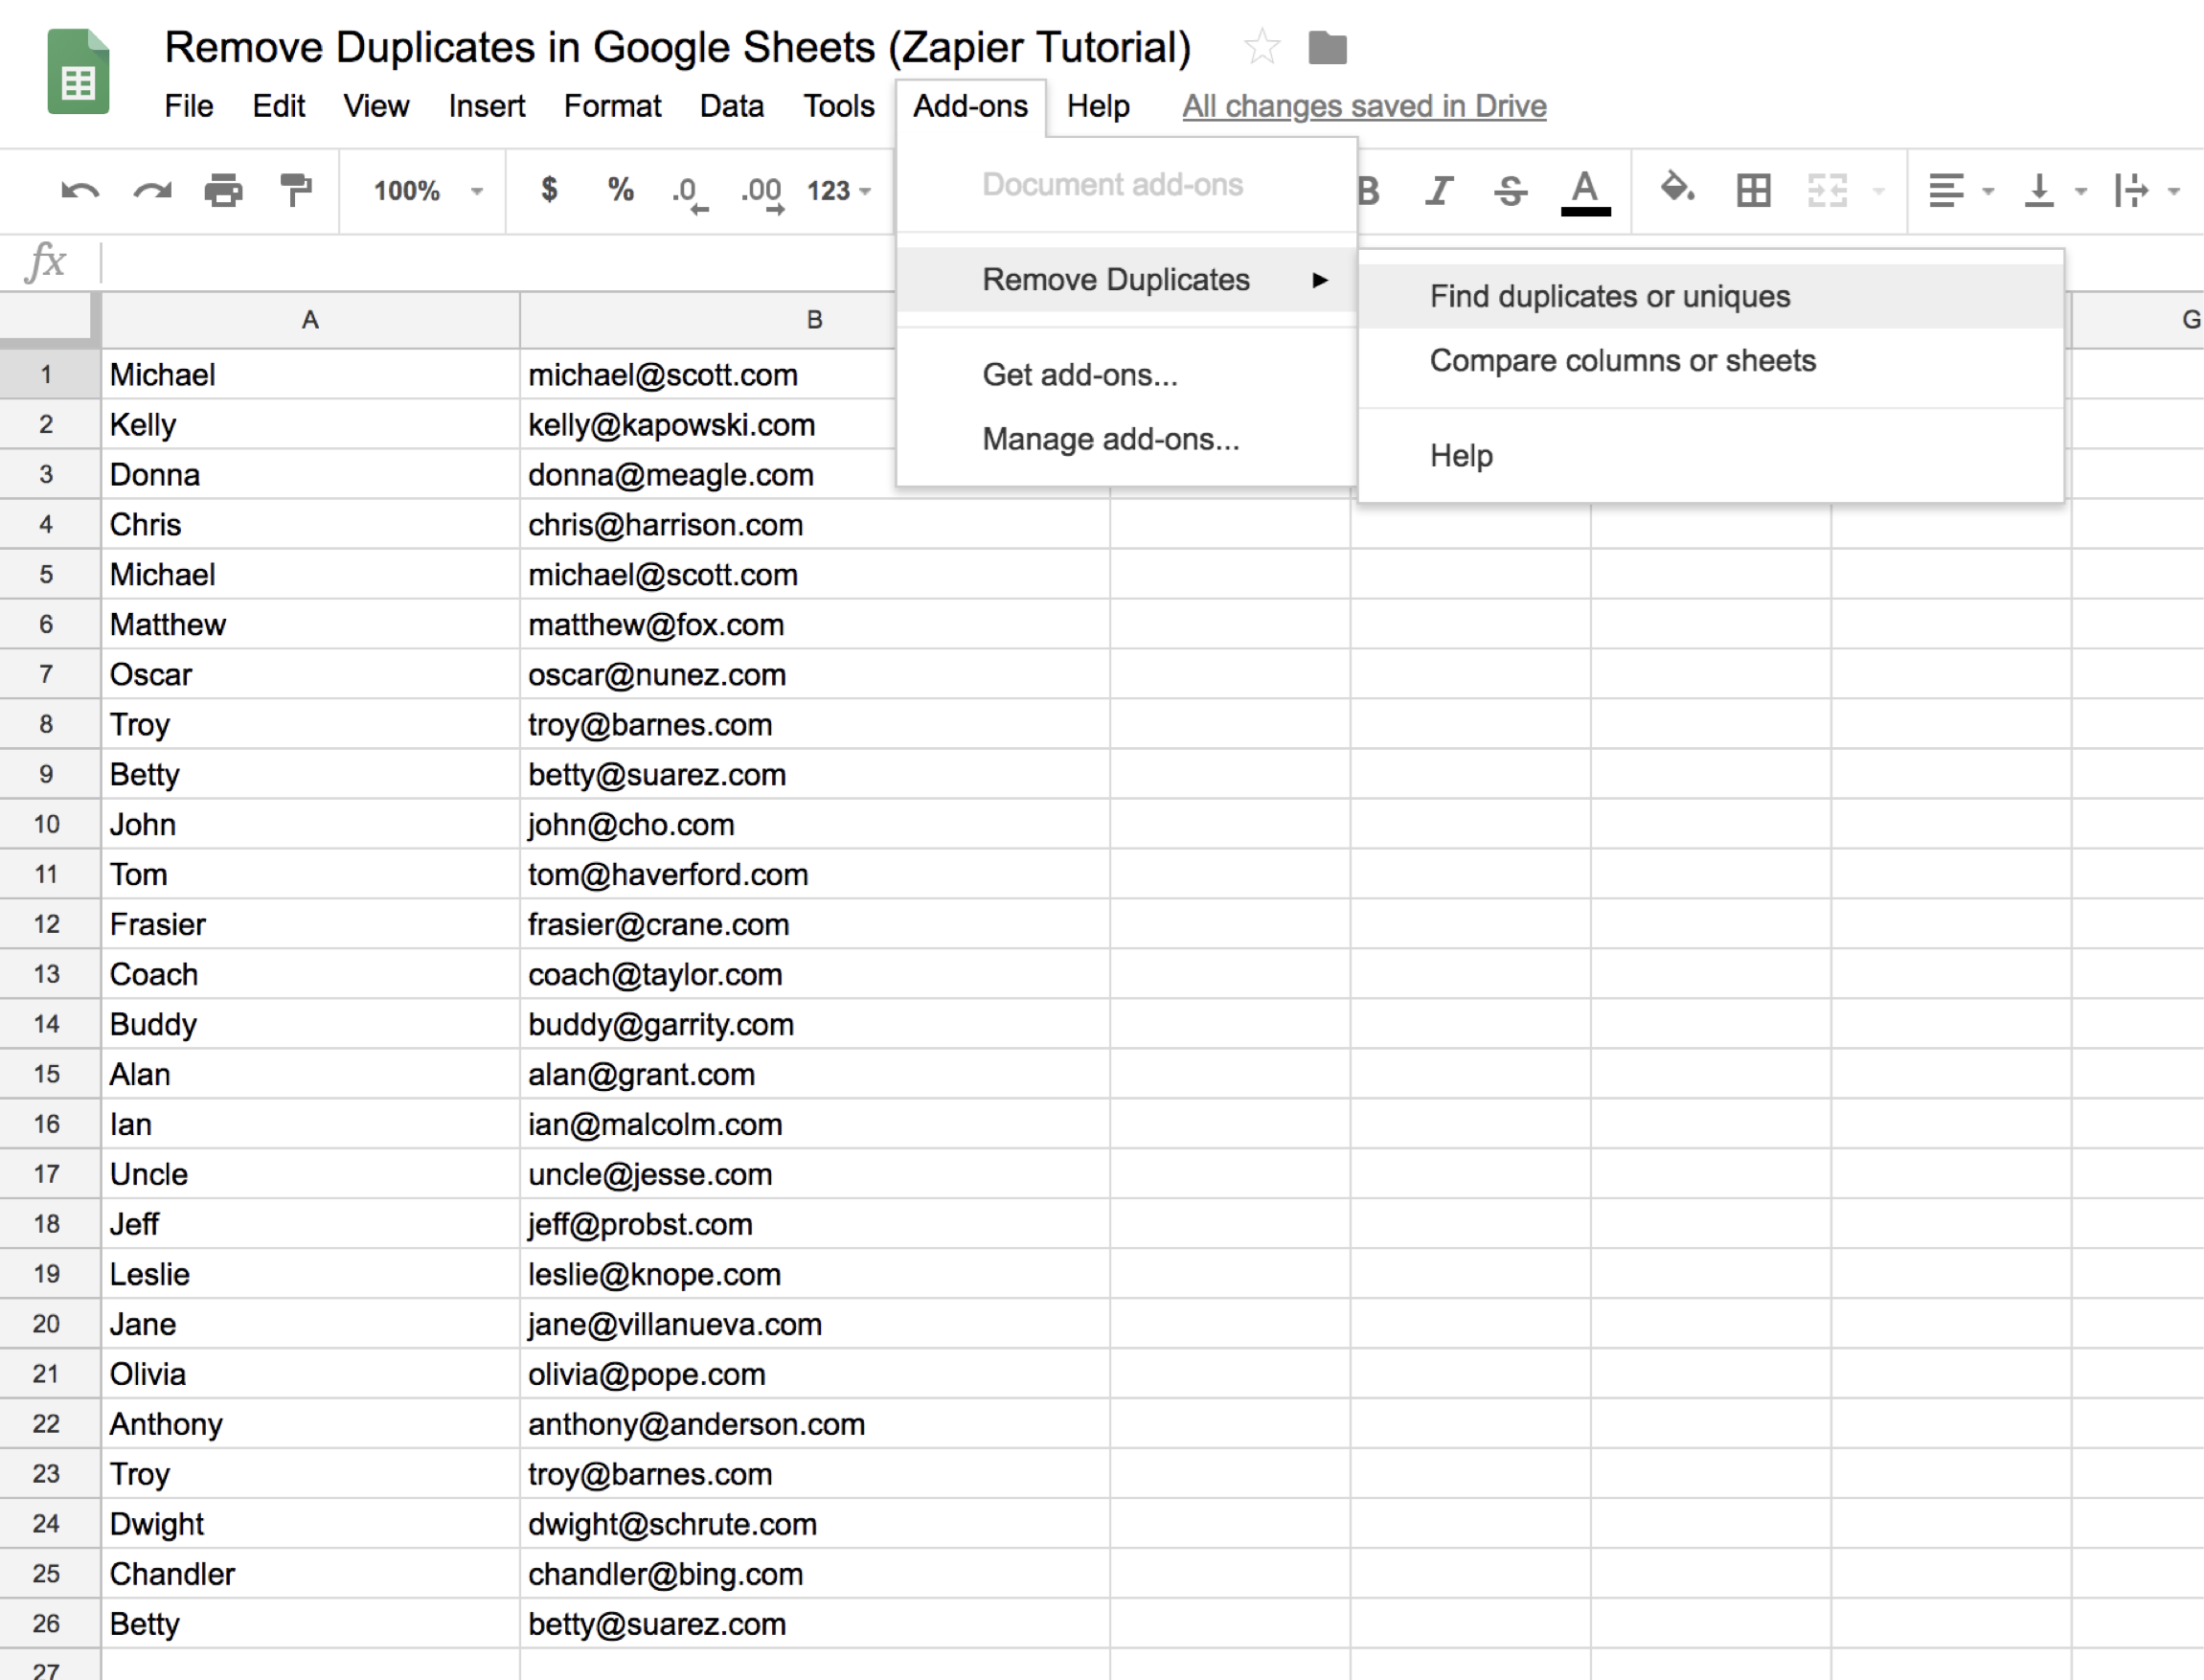 how to remove duplicates in google sheets